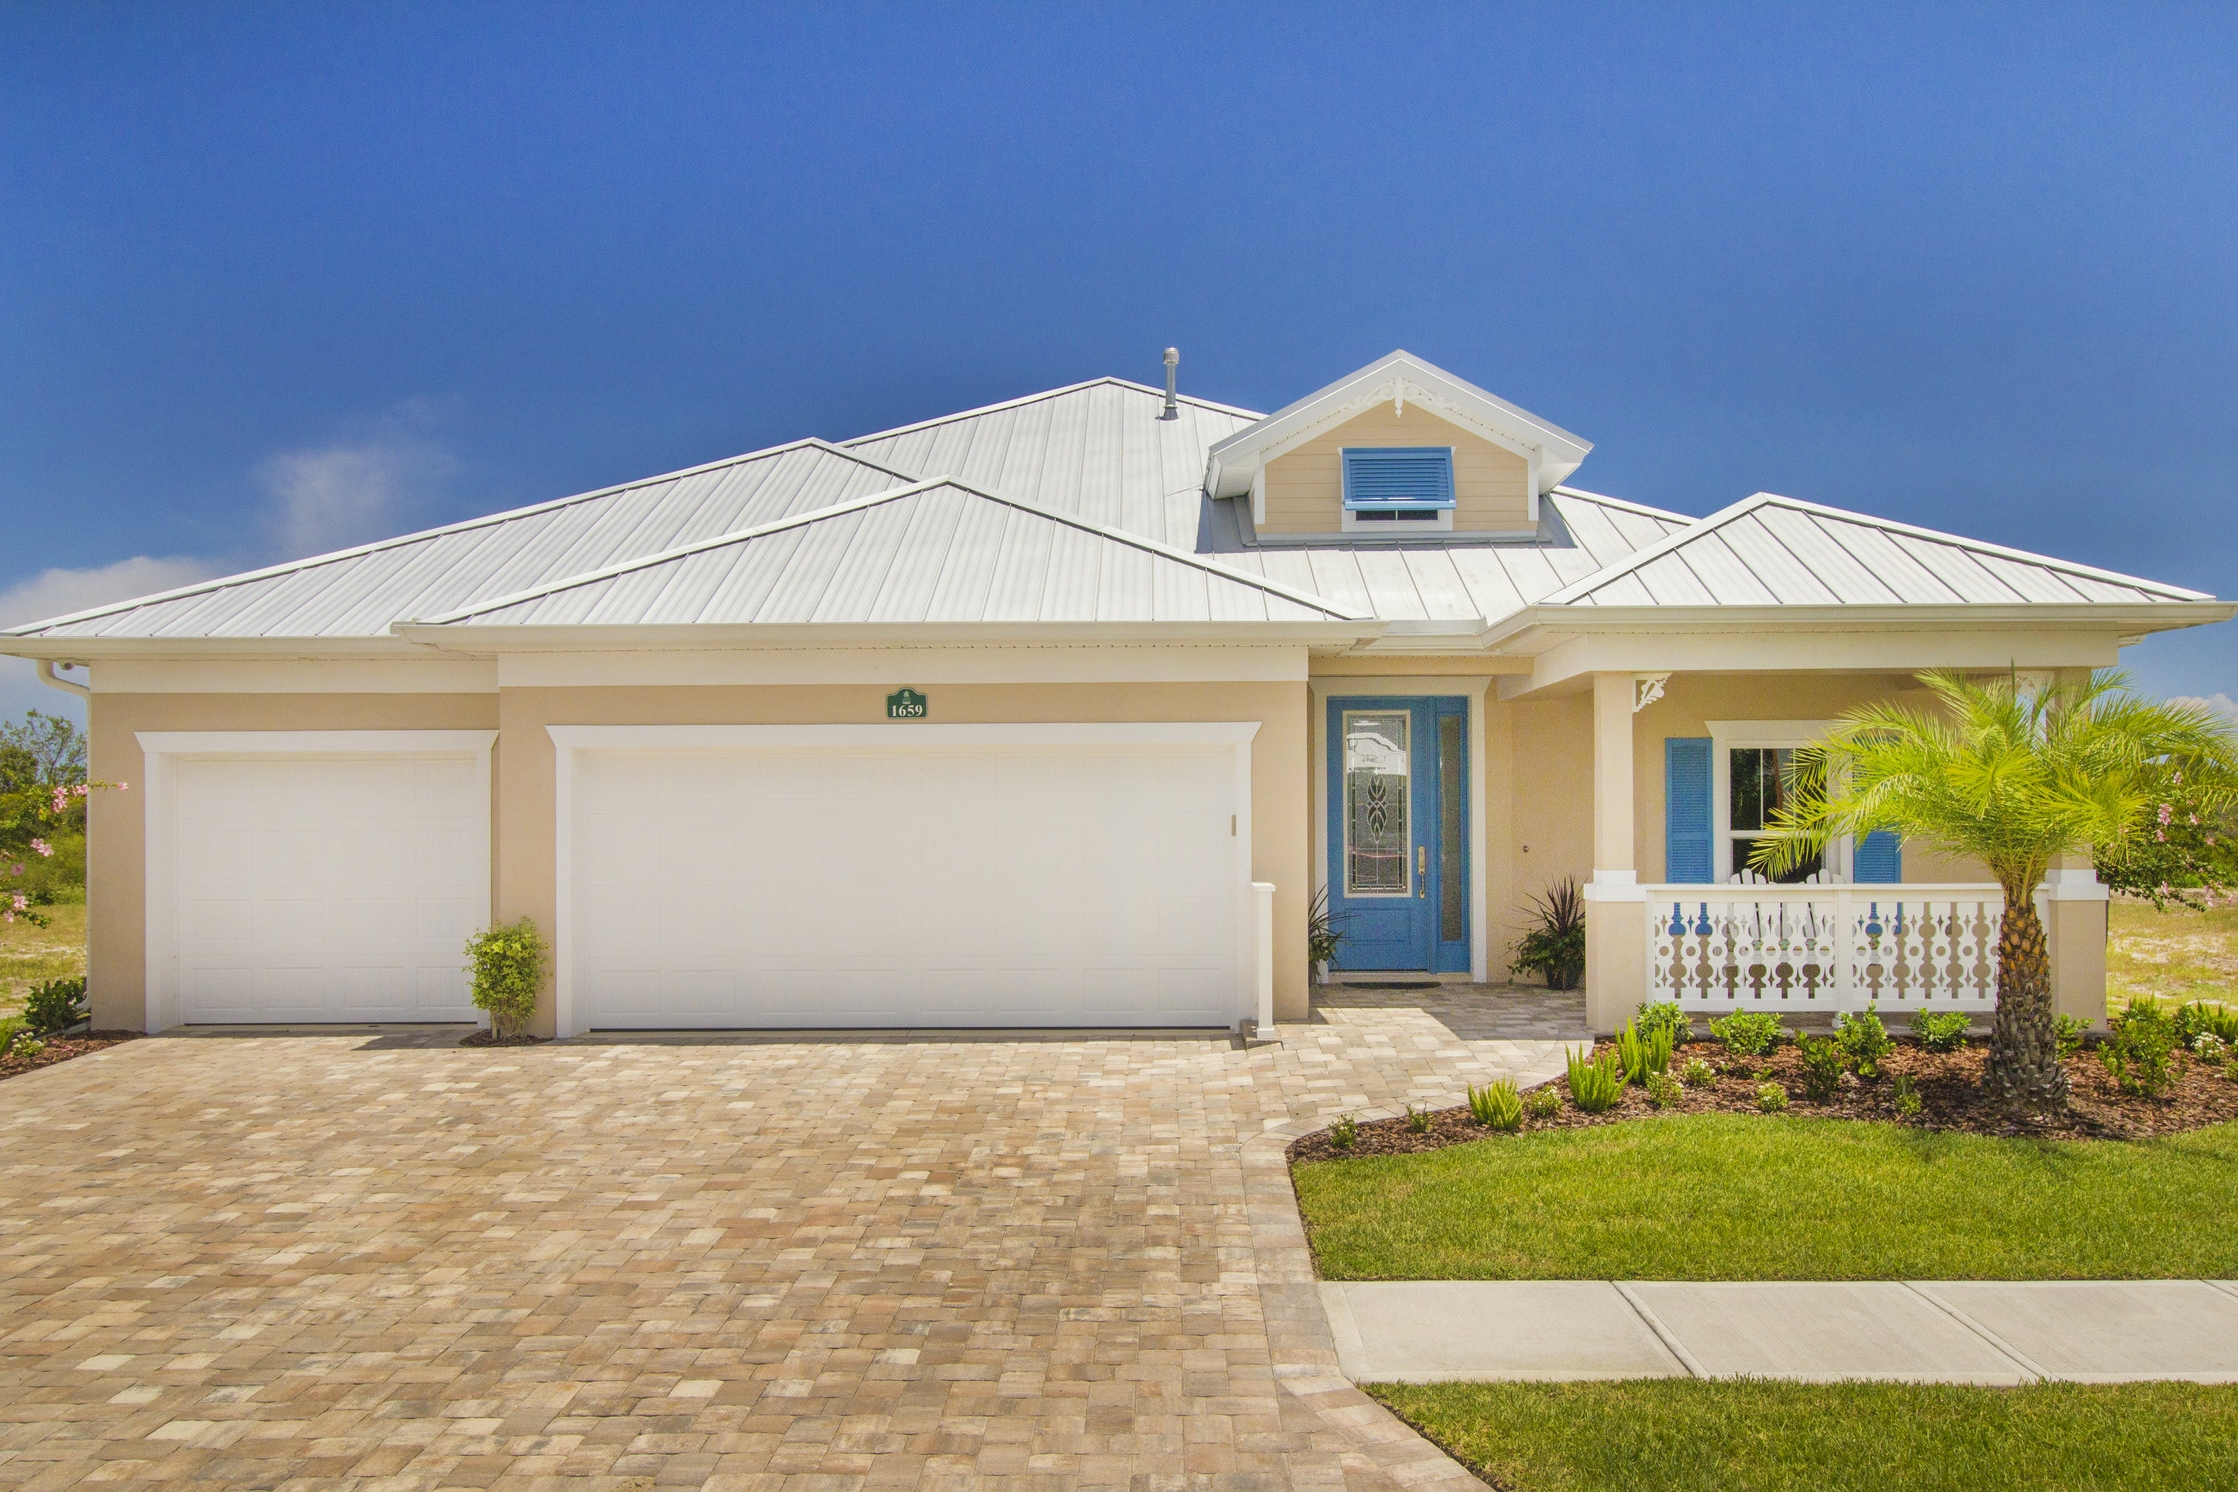 The Abacos - 4 bedroom, 3 bathroom, 3 car garage2,401 sq. ft. under air / 3,500 sq. ft. totalView FloorplanView Virtual Tour